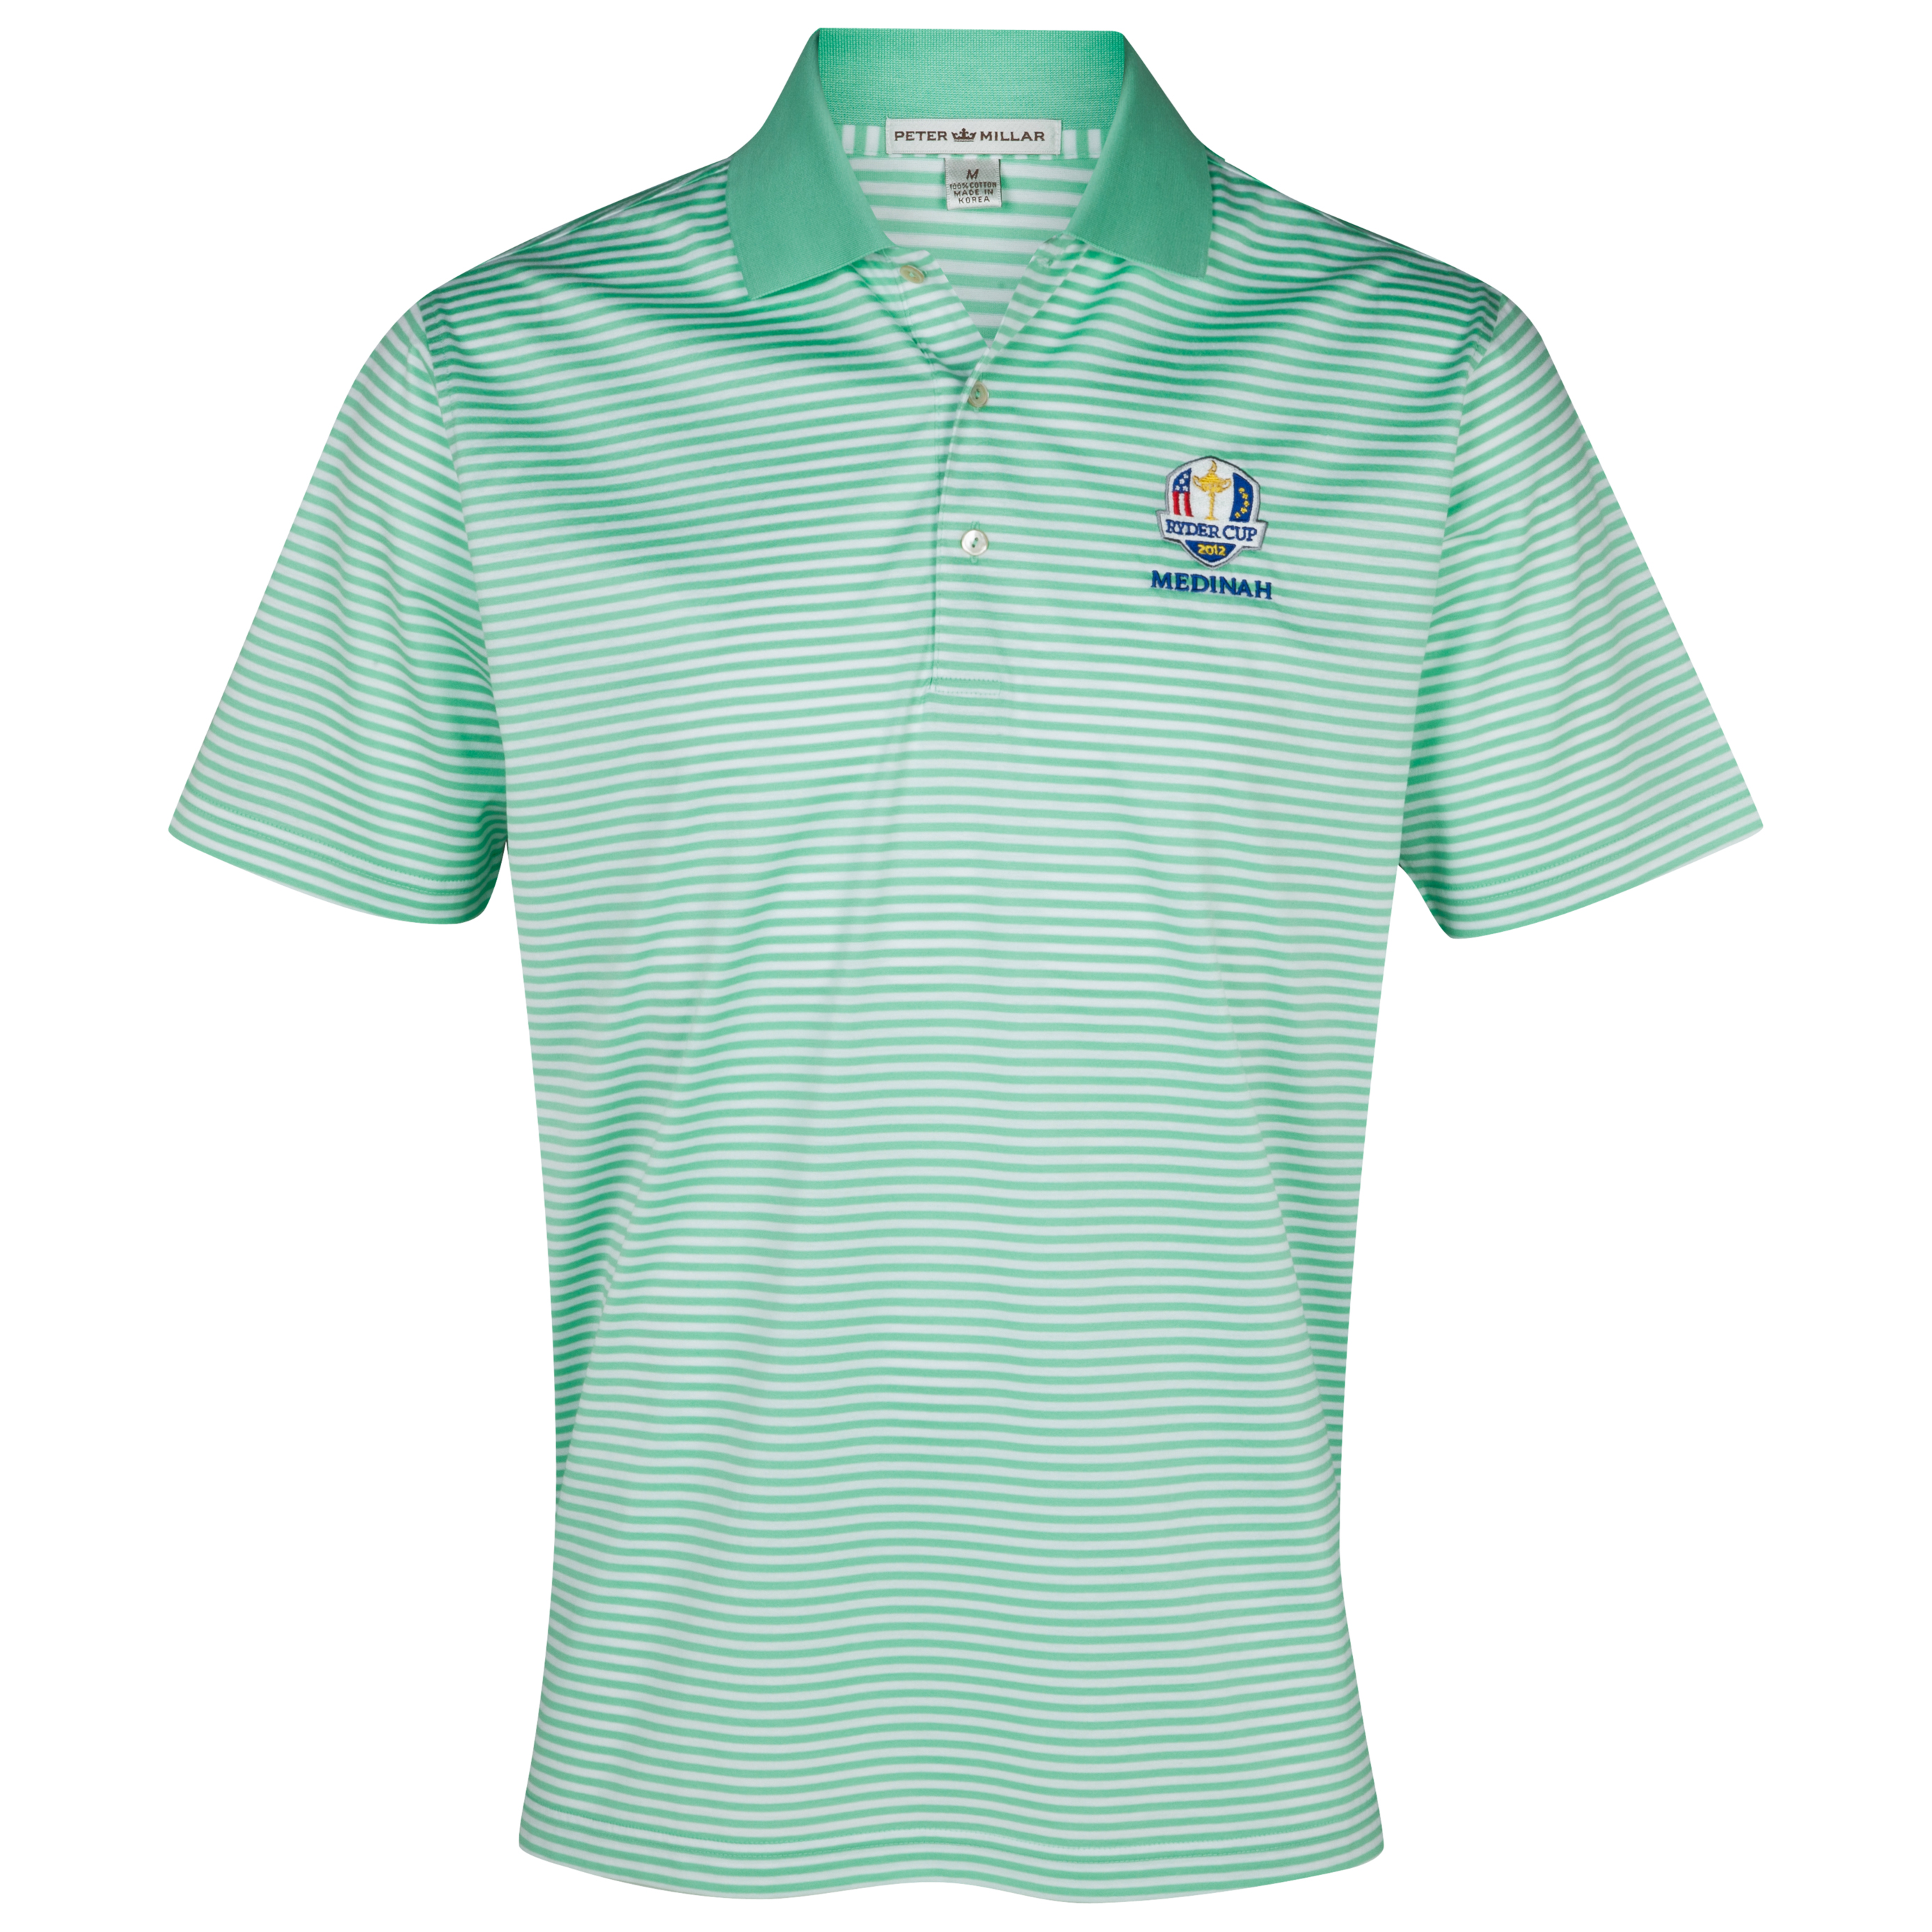 The 2012 Ryder Cup Peter Millar Luxury Stripe Polo - Spearmint/White